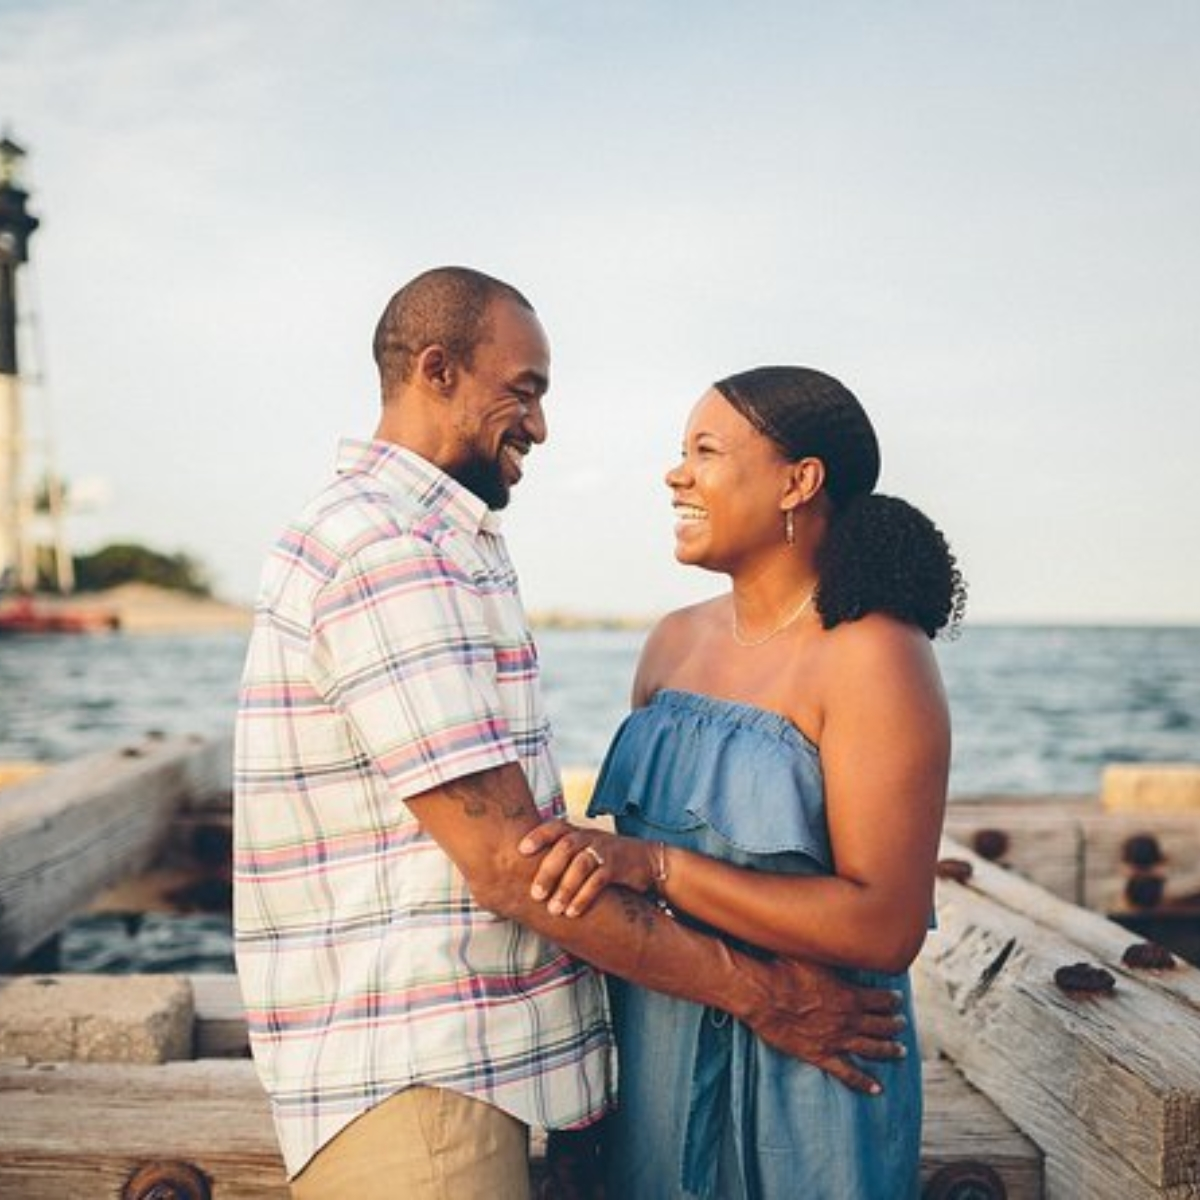 30 Minute Private Vacation Photography Session with Photographer in Ft Lauderdale Images